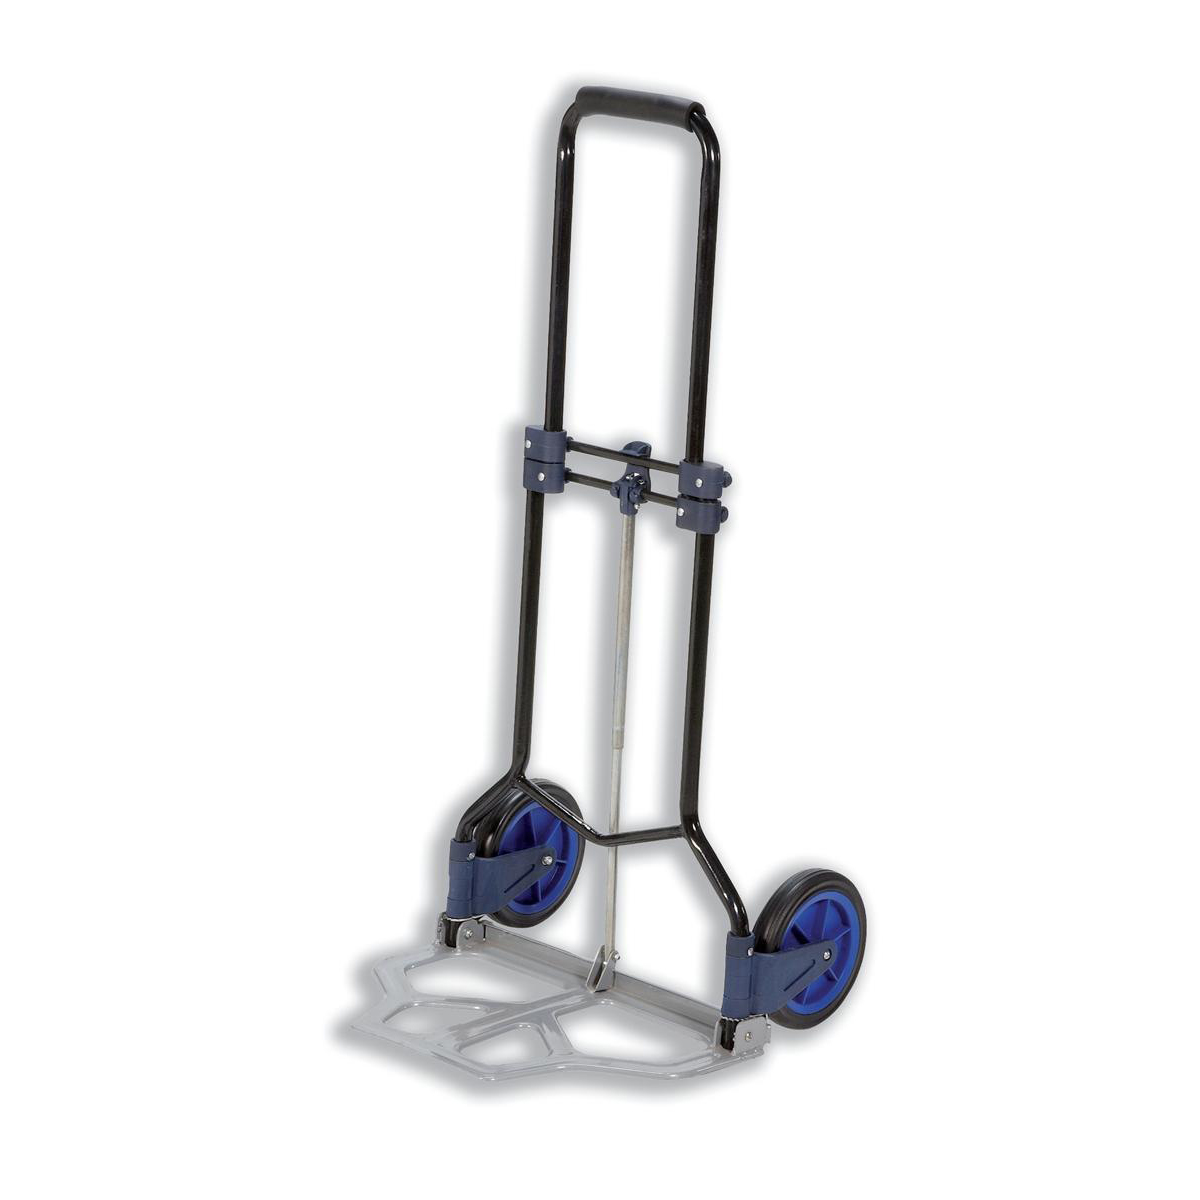 5 Star Facilities Hand Trolley Folding Capacity 70kg Foot Size W480xL470mm Black